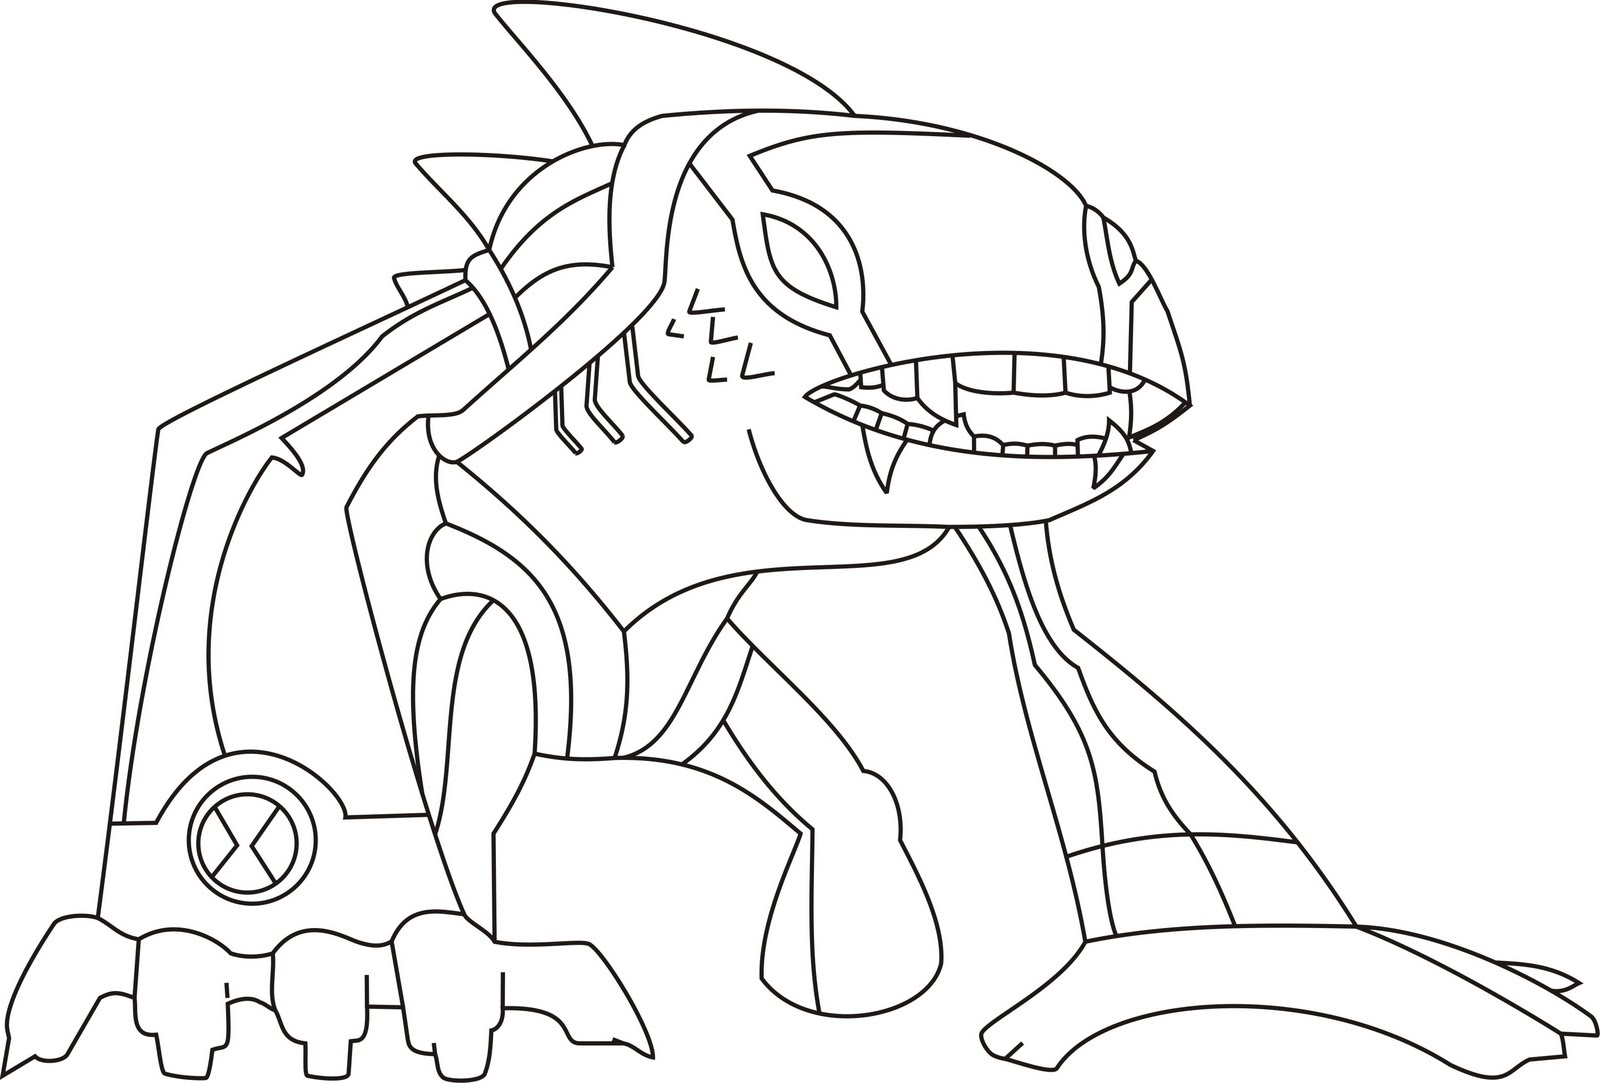 coloring pages ben 10 - photo#28